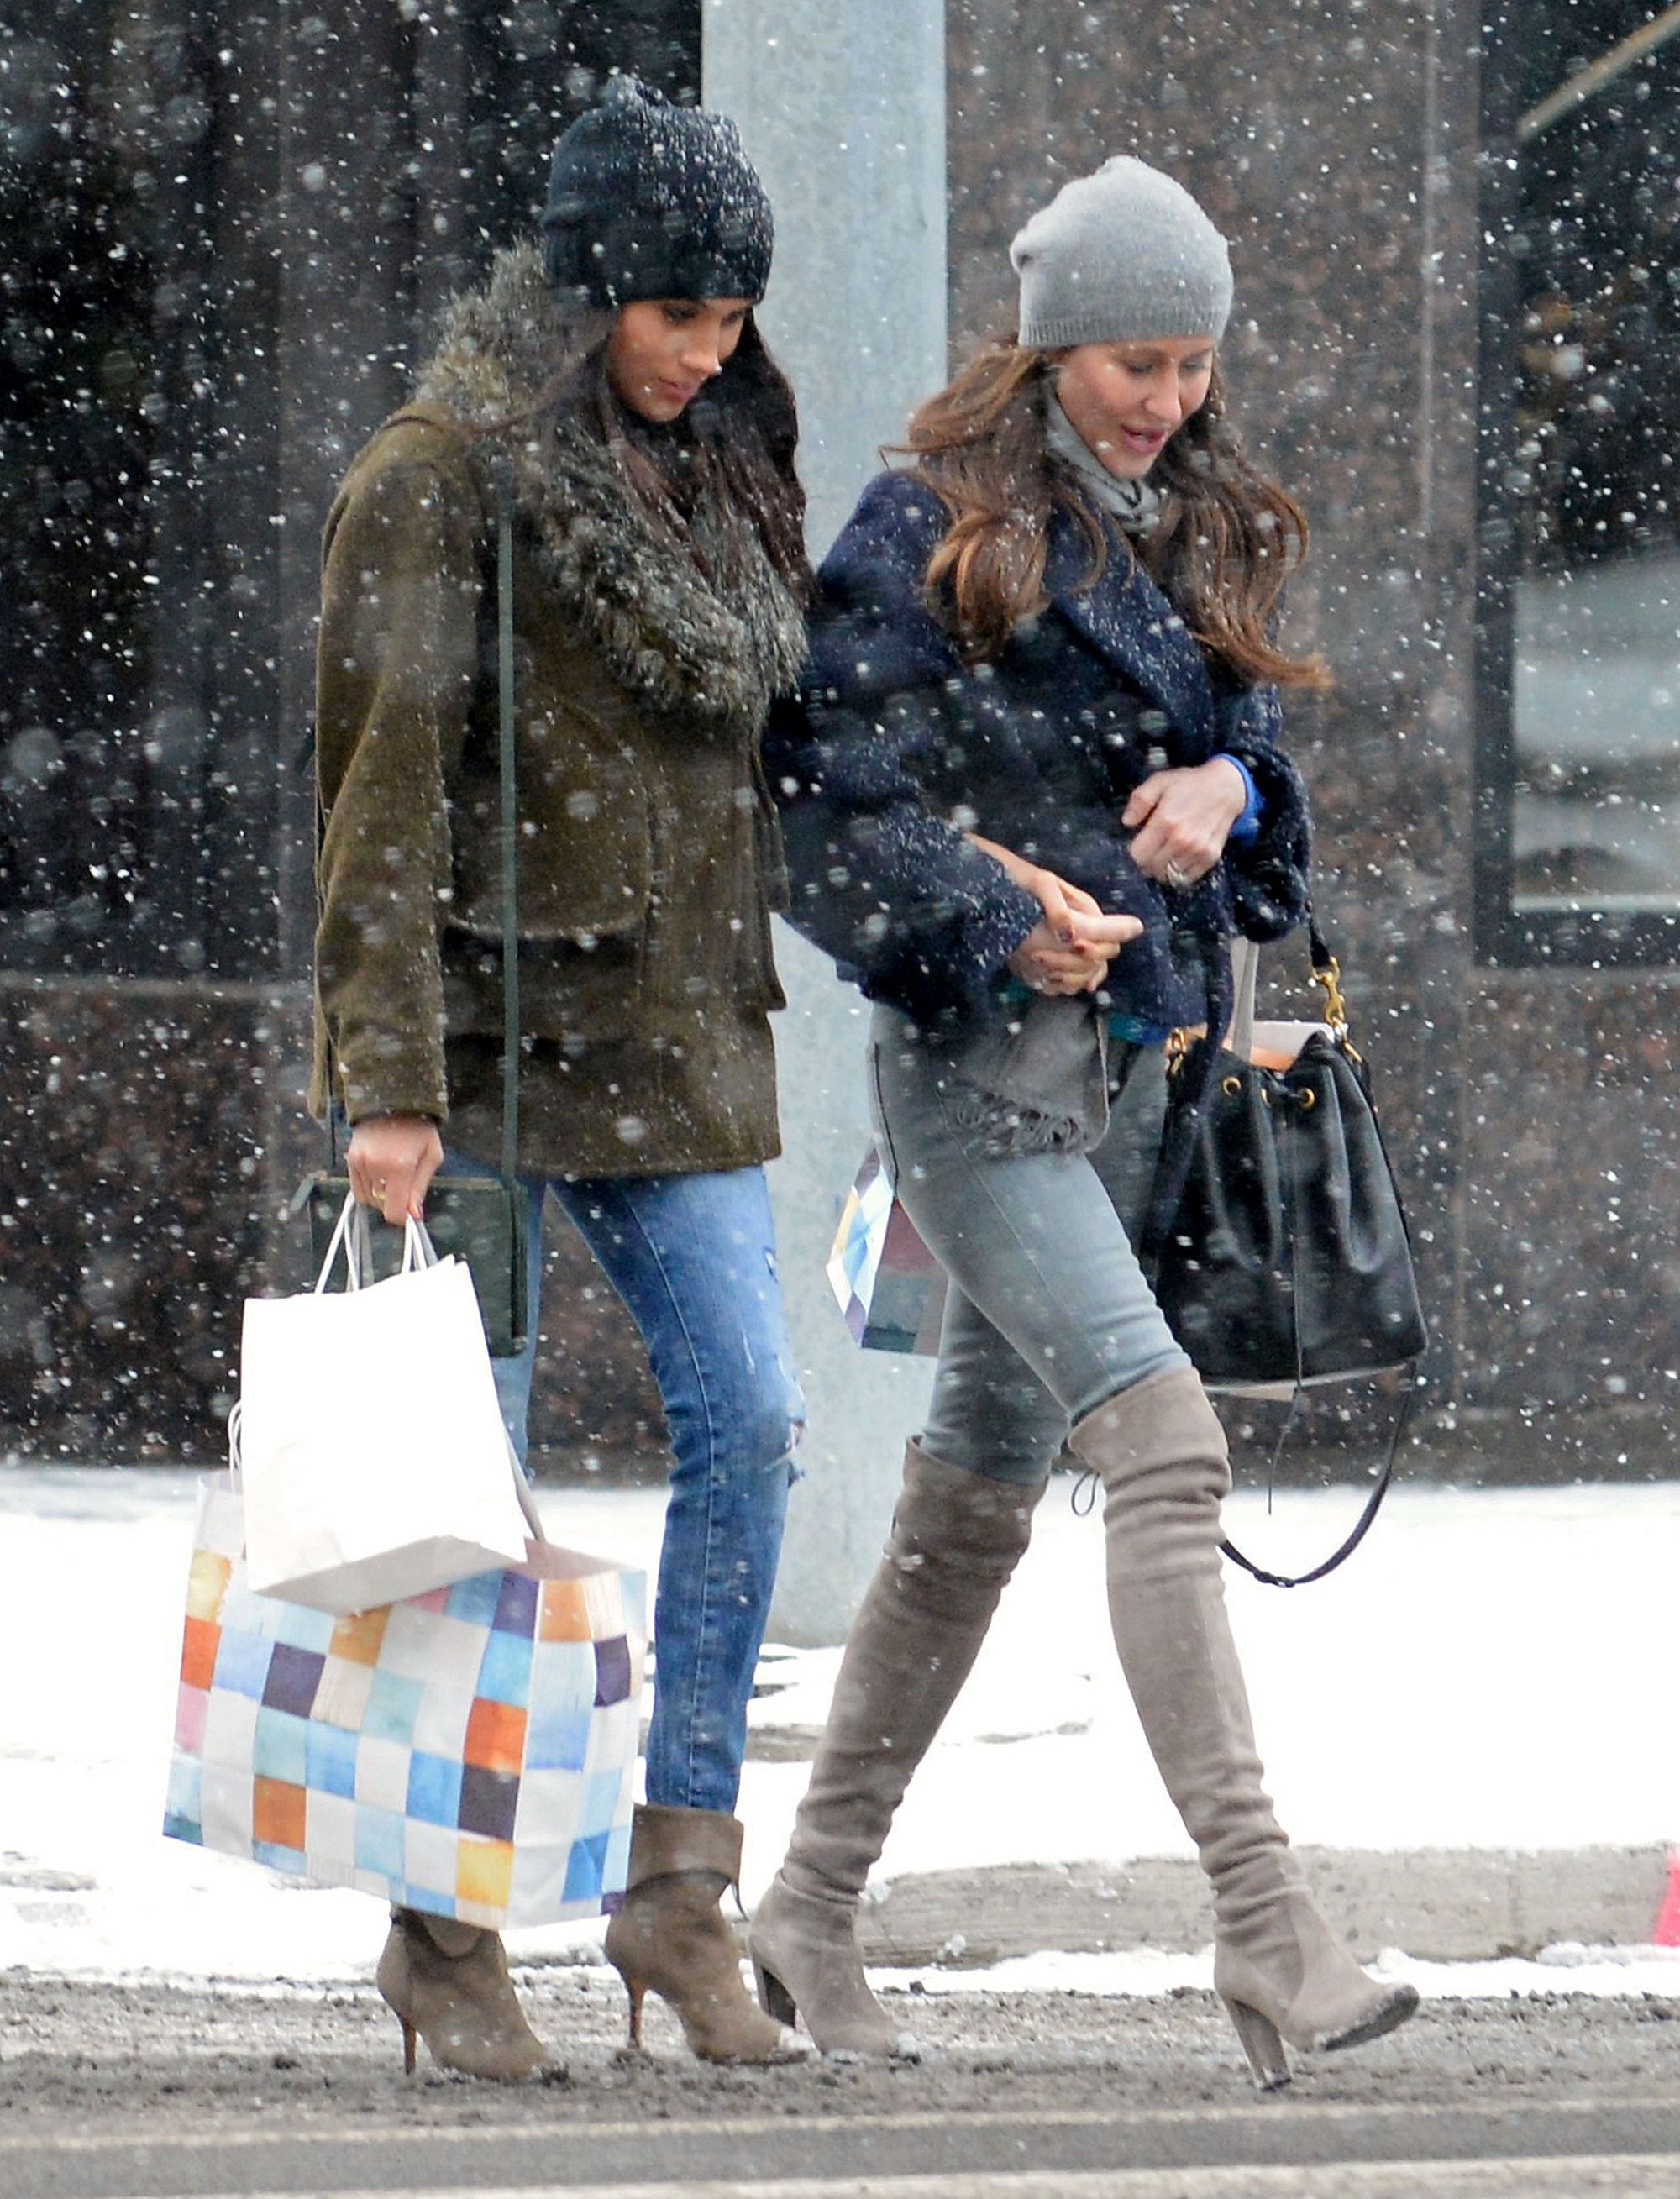 c7416bf704 Meghan Markle Manages to Look Flawless While Bundled Up in Snowy Toronto  from InStyle.com